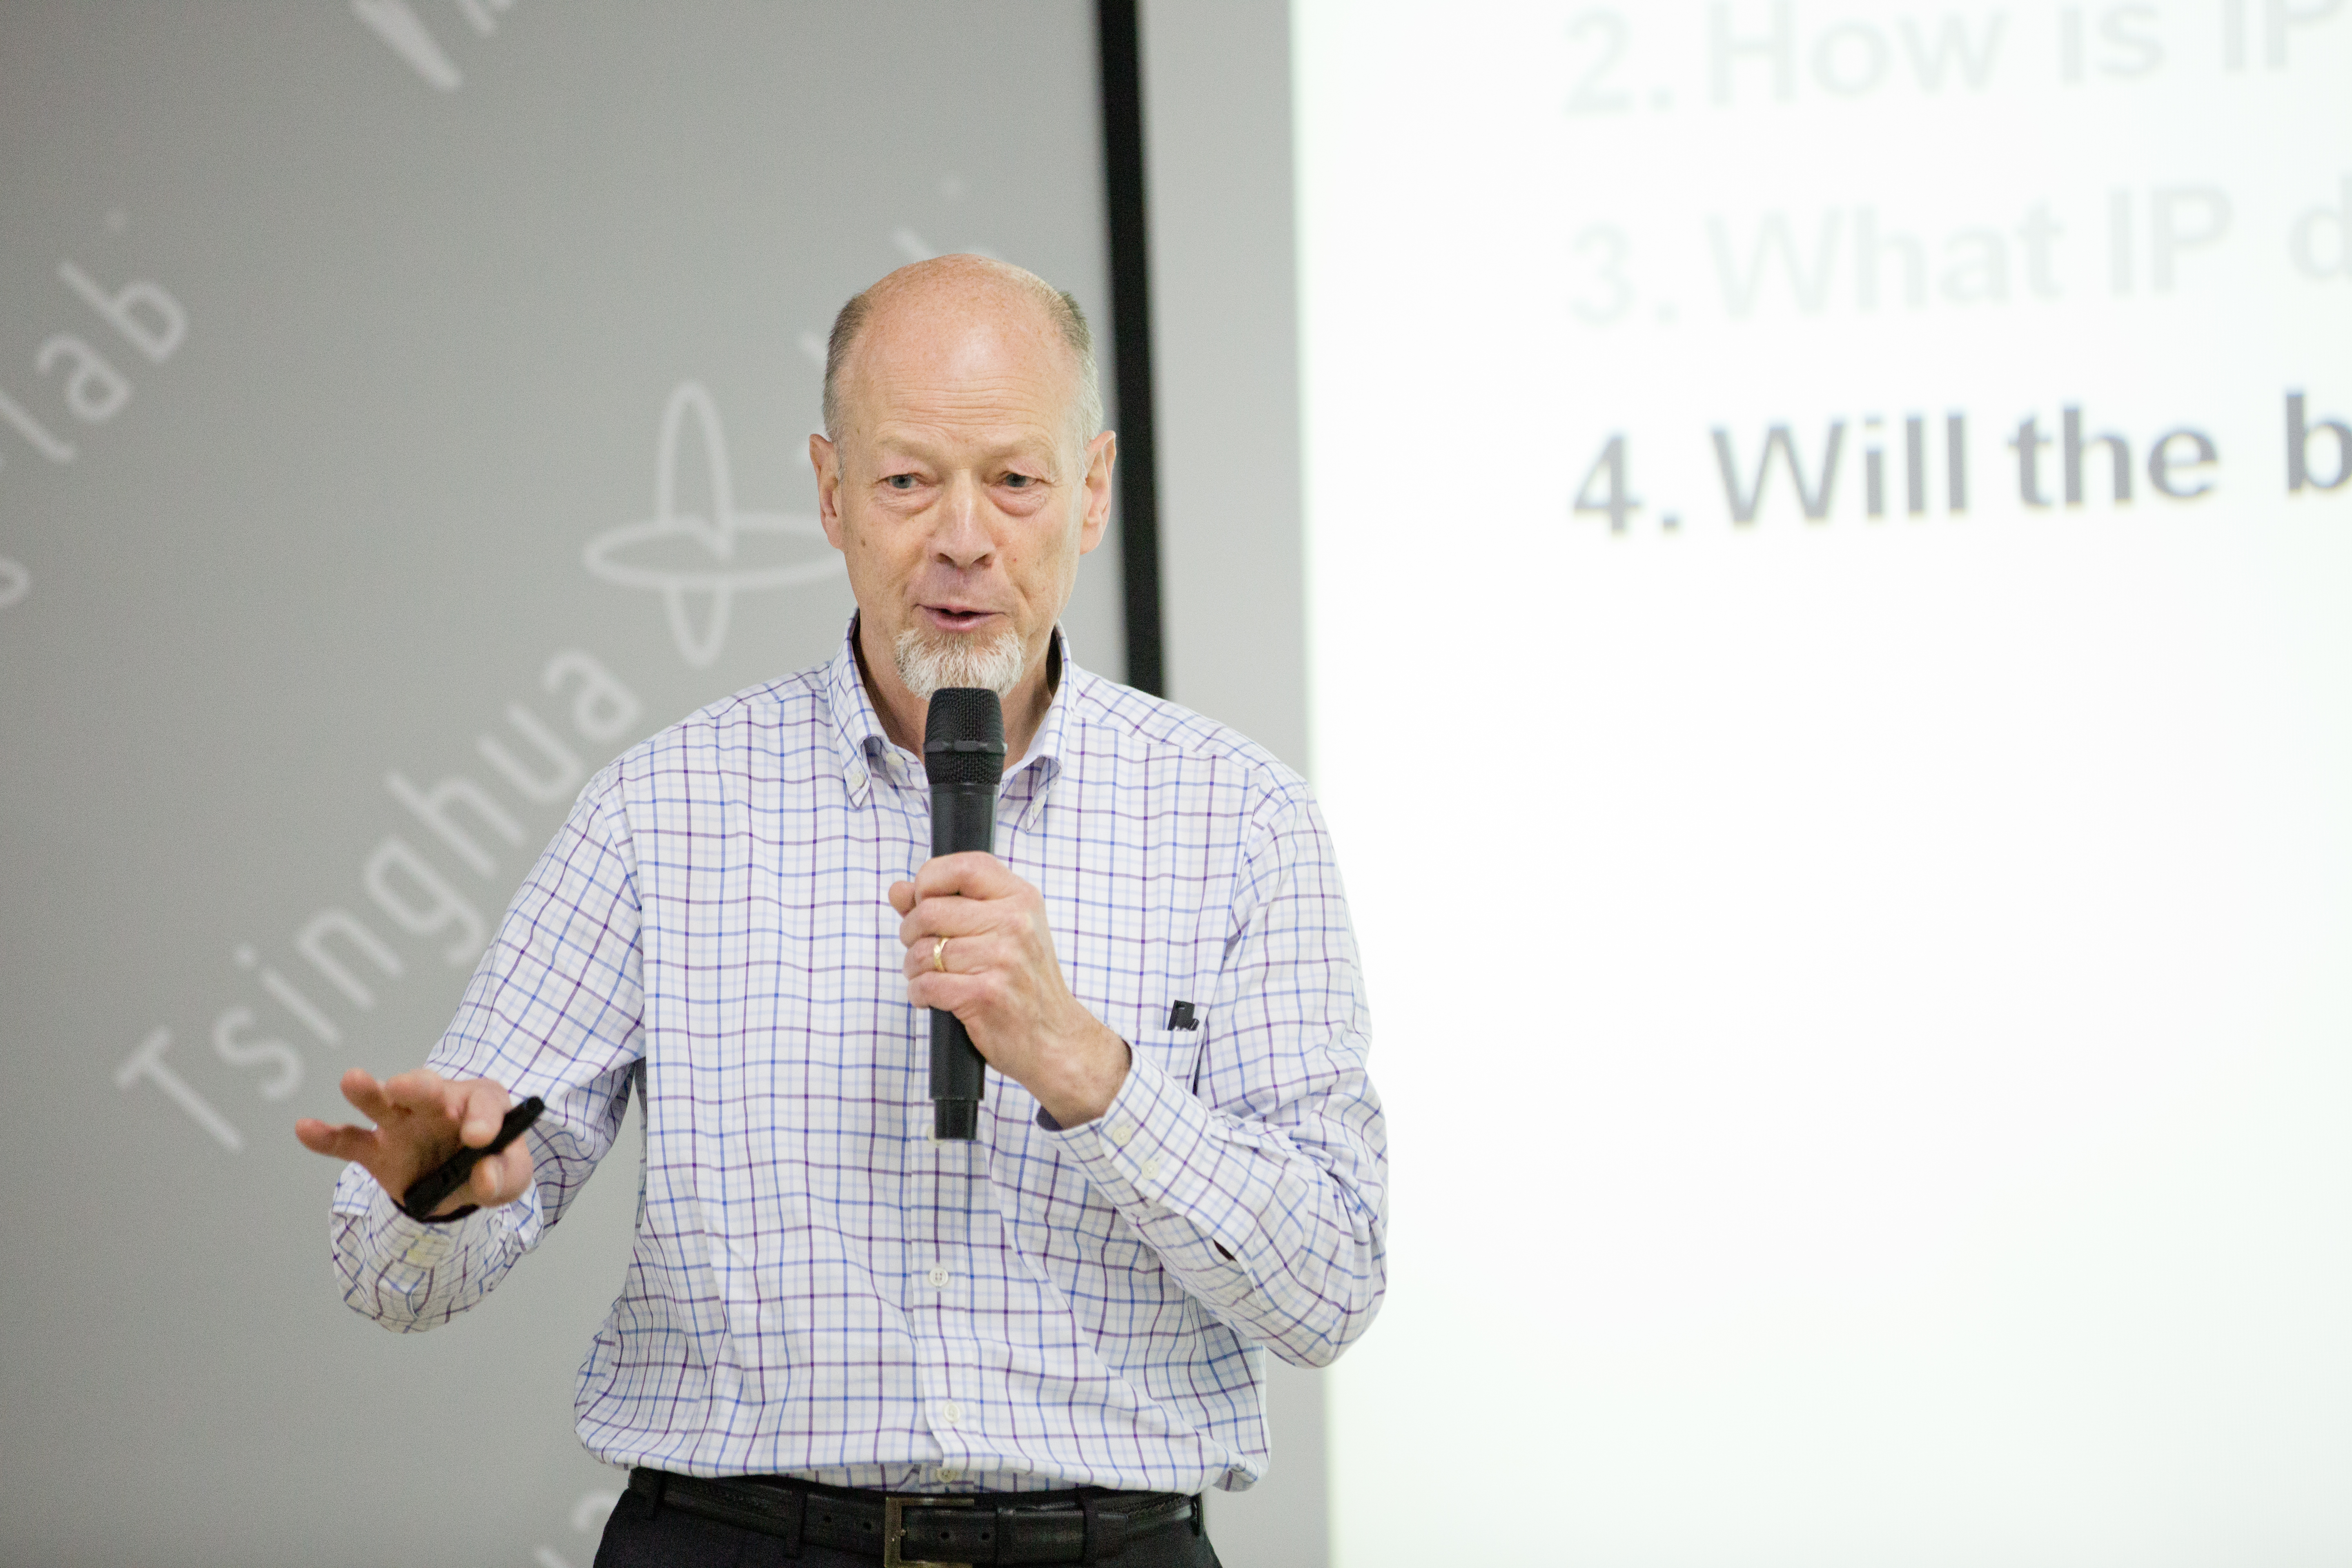 【x-lab Talk】IP Issuess for Startups by Ian Harvey